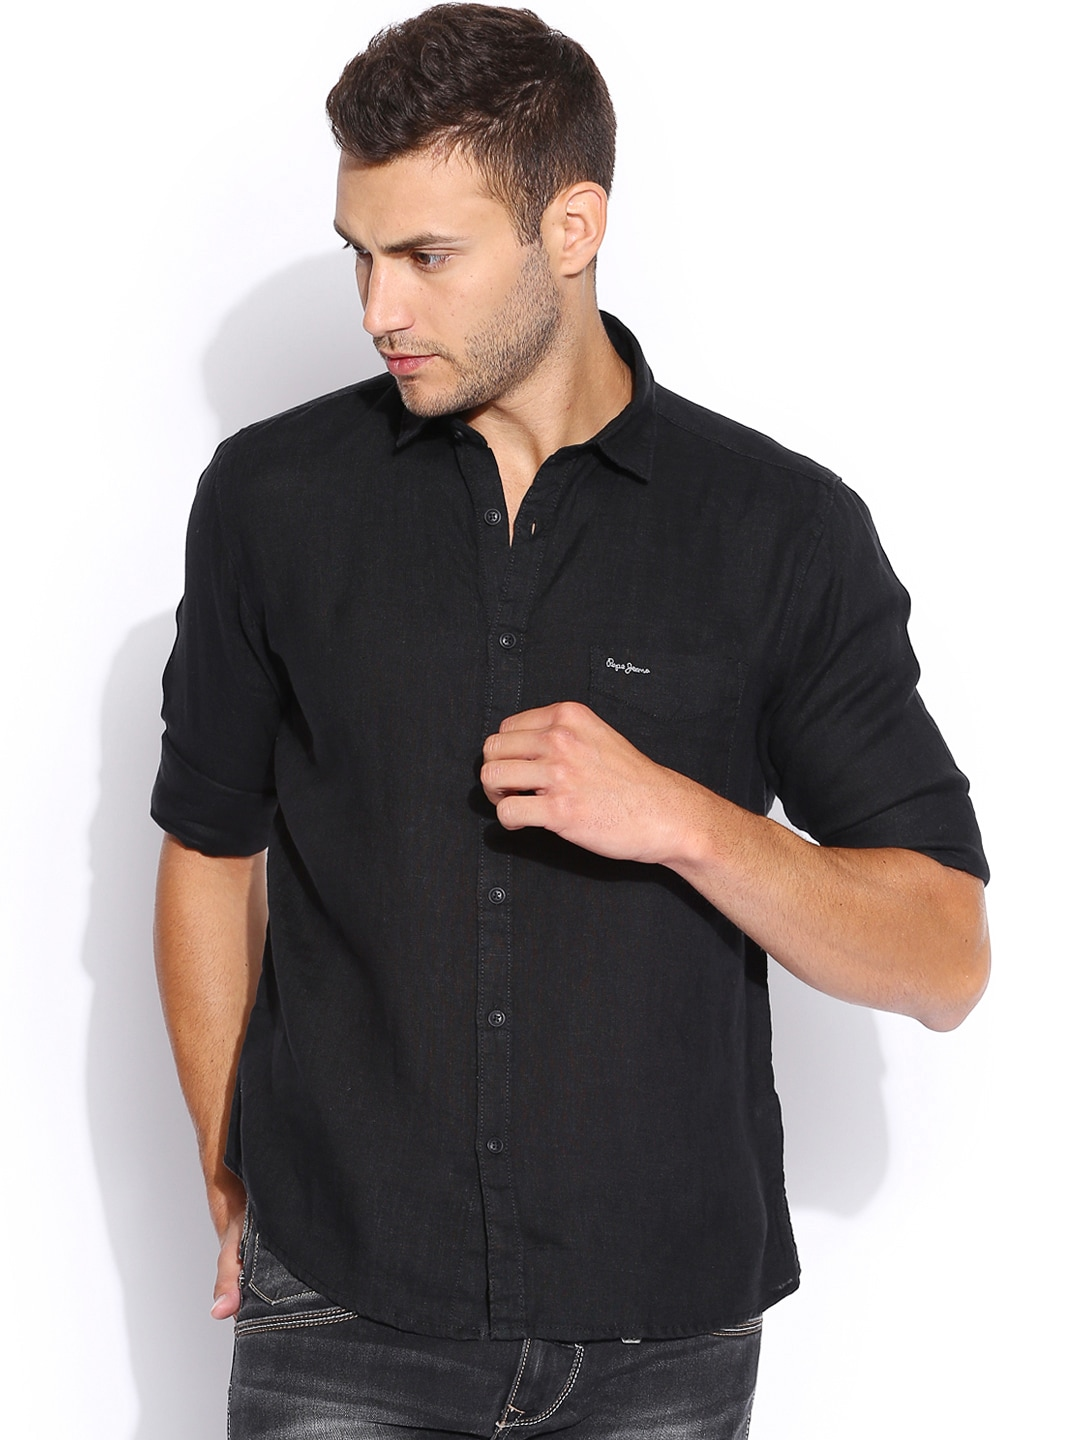 Pepe Jeans Black Linen Semi Fit Casual Shirt